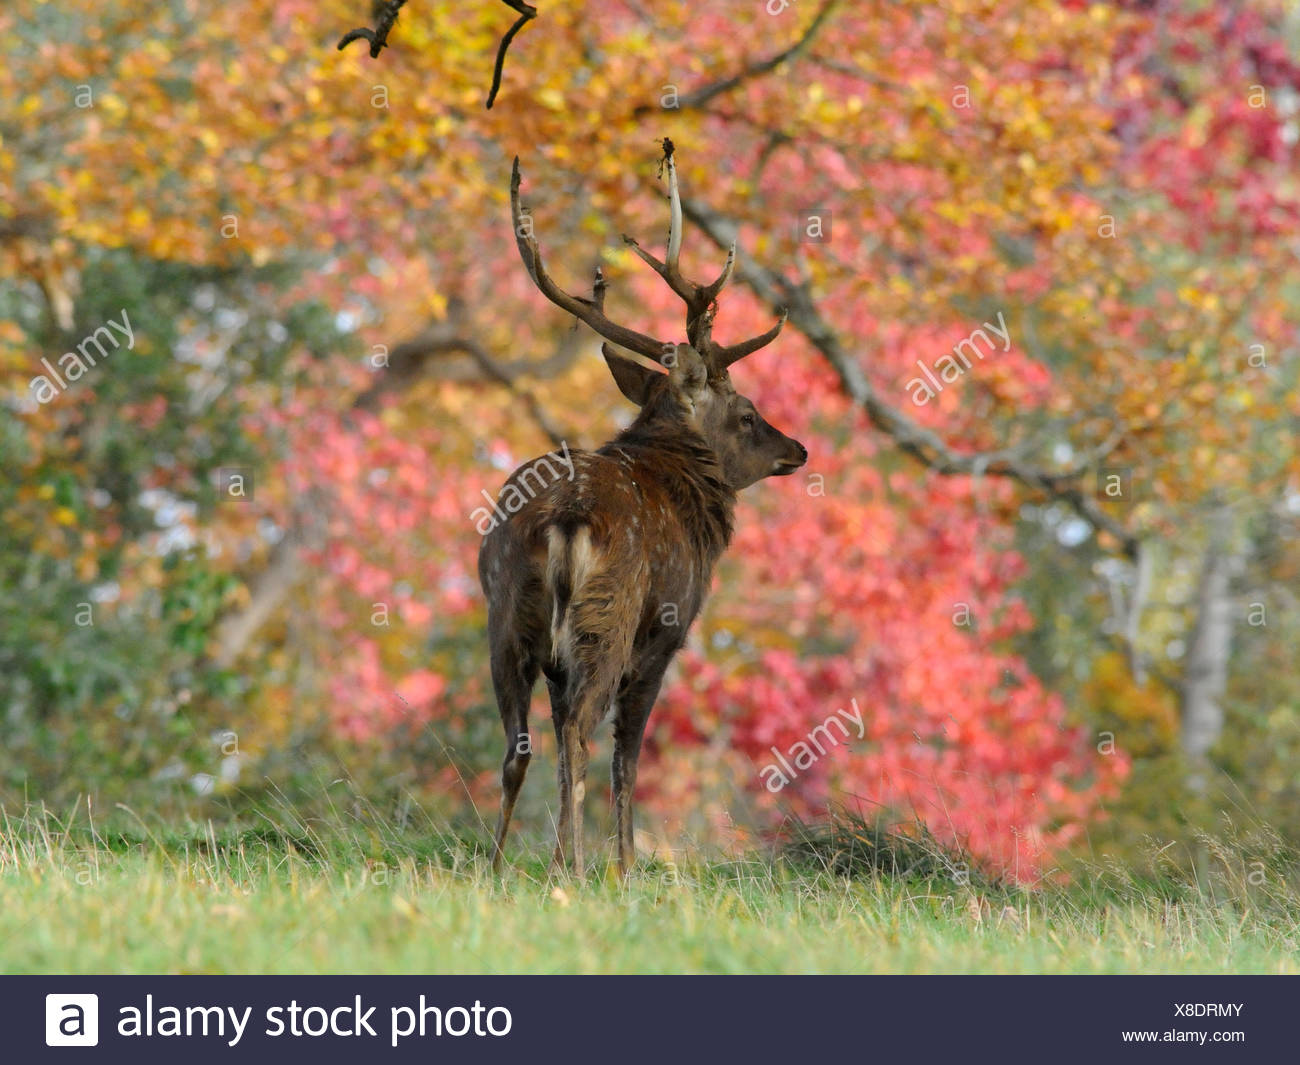 A young deer in amongst Autumn foliage. - Stock Image